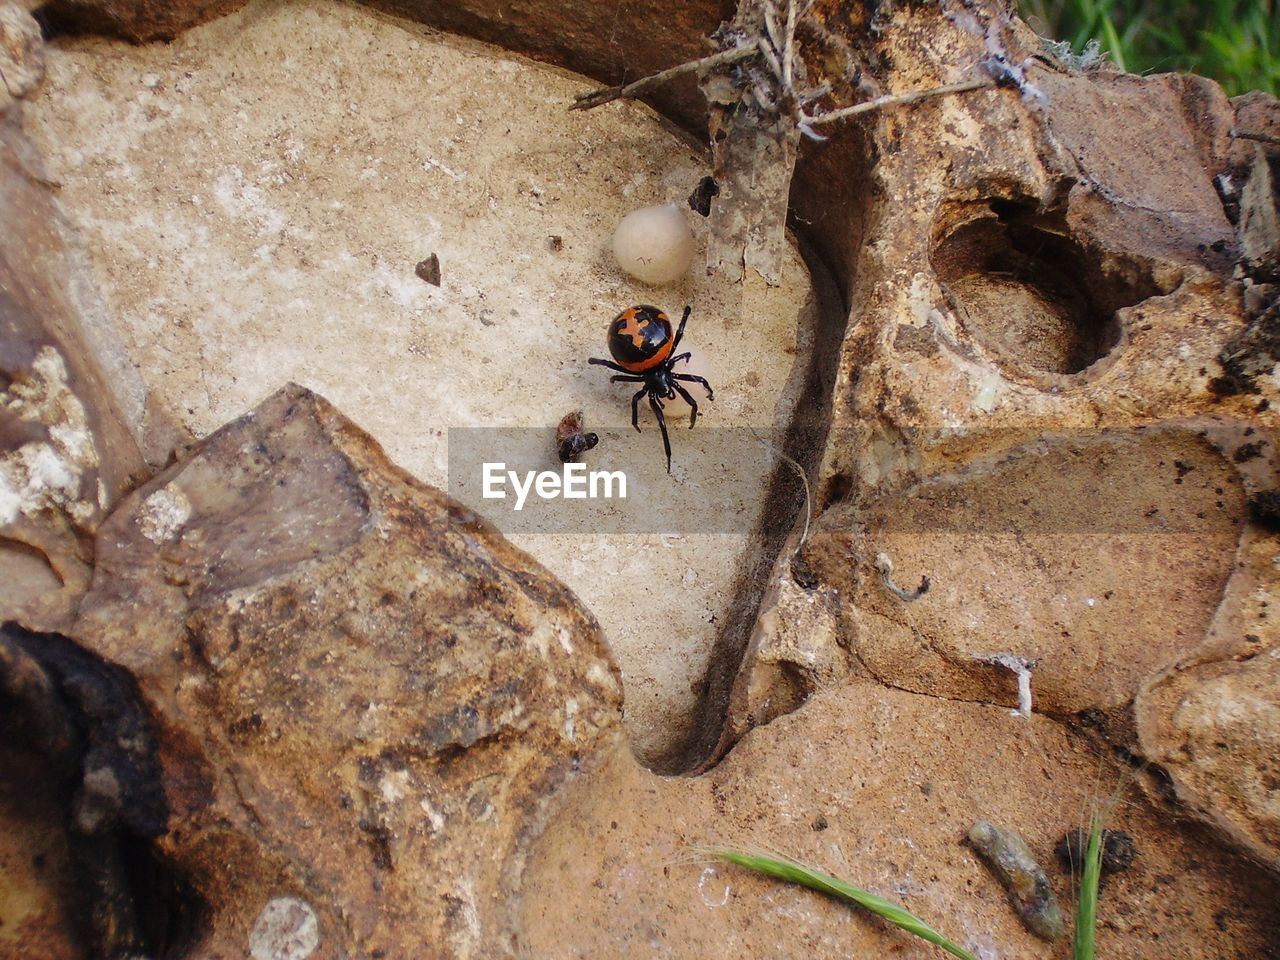 animal themes, animals in the wild, animal wildlife, insect, invertebrate, animal, one animal, rock, rock - object, solid, no people, high angle view, close-up, day, nature, beetle, zoology, outdoors, animal wing, ant